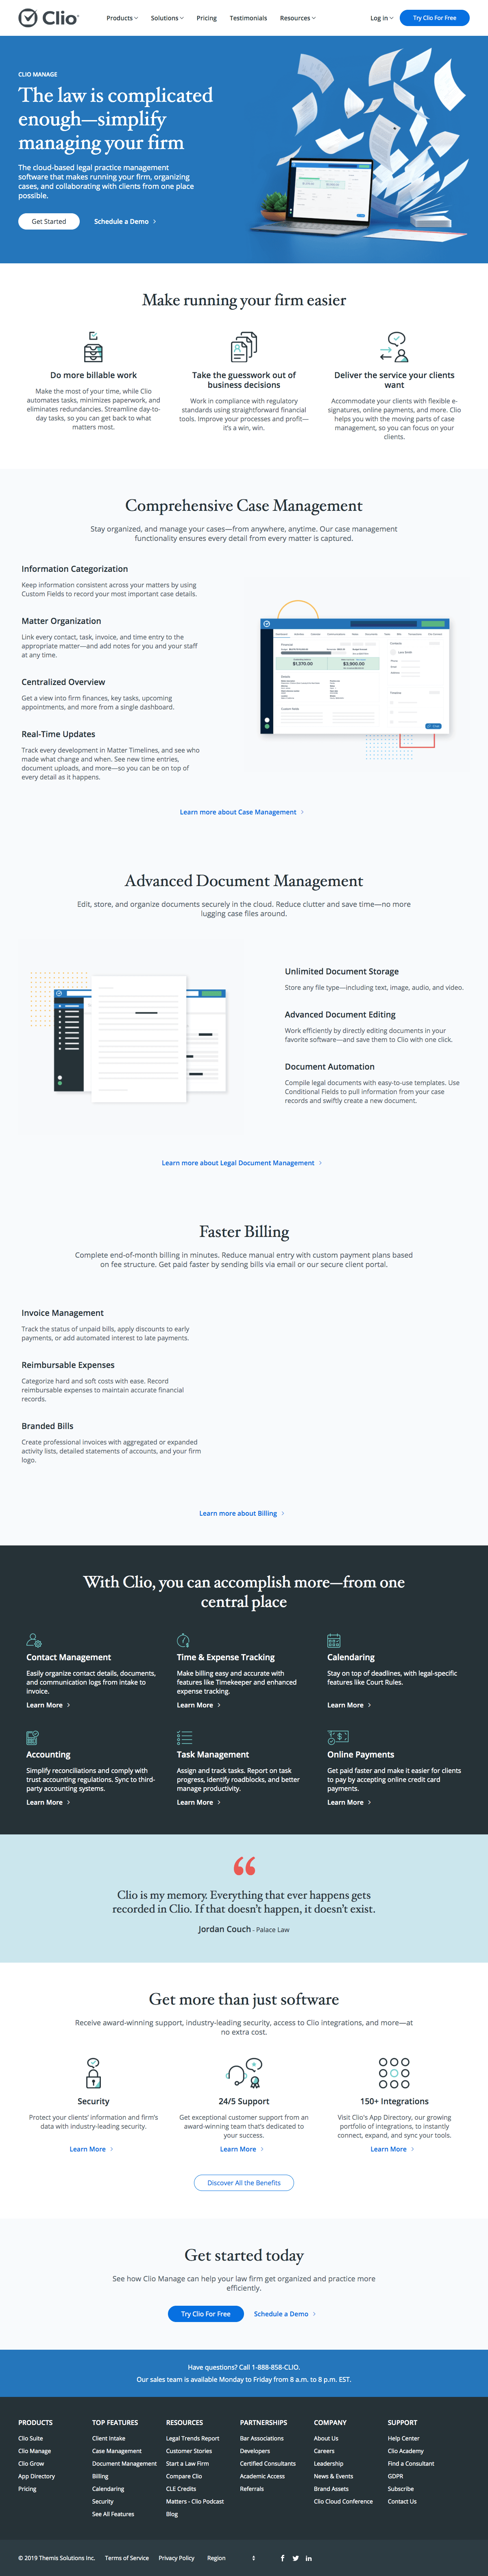 Clio - Features page